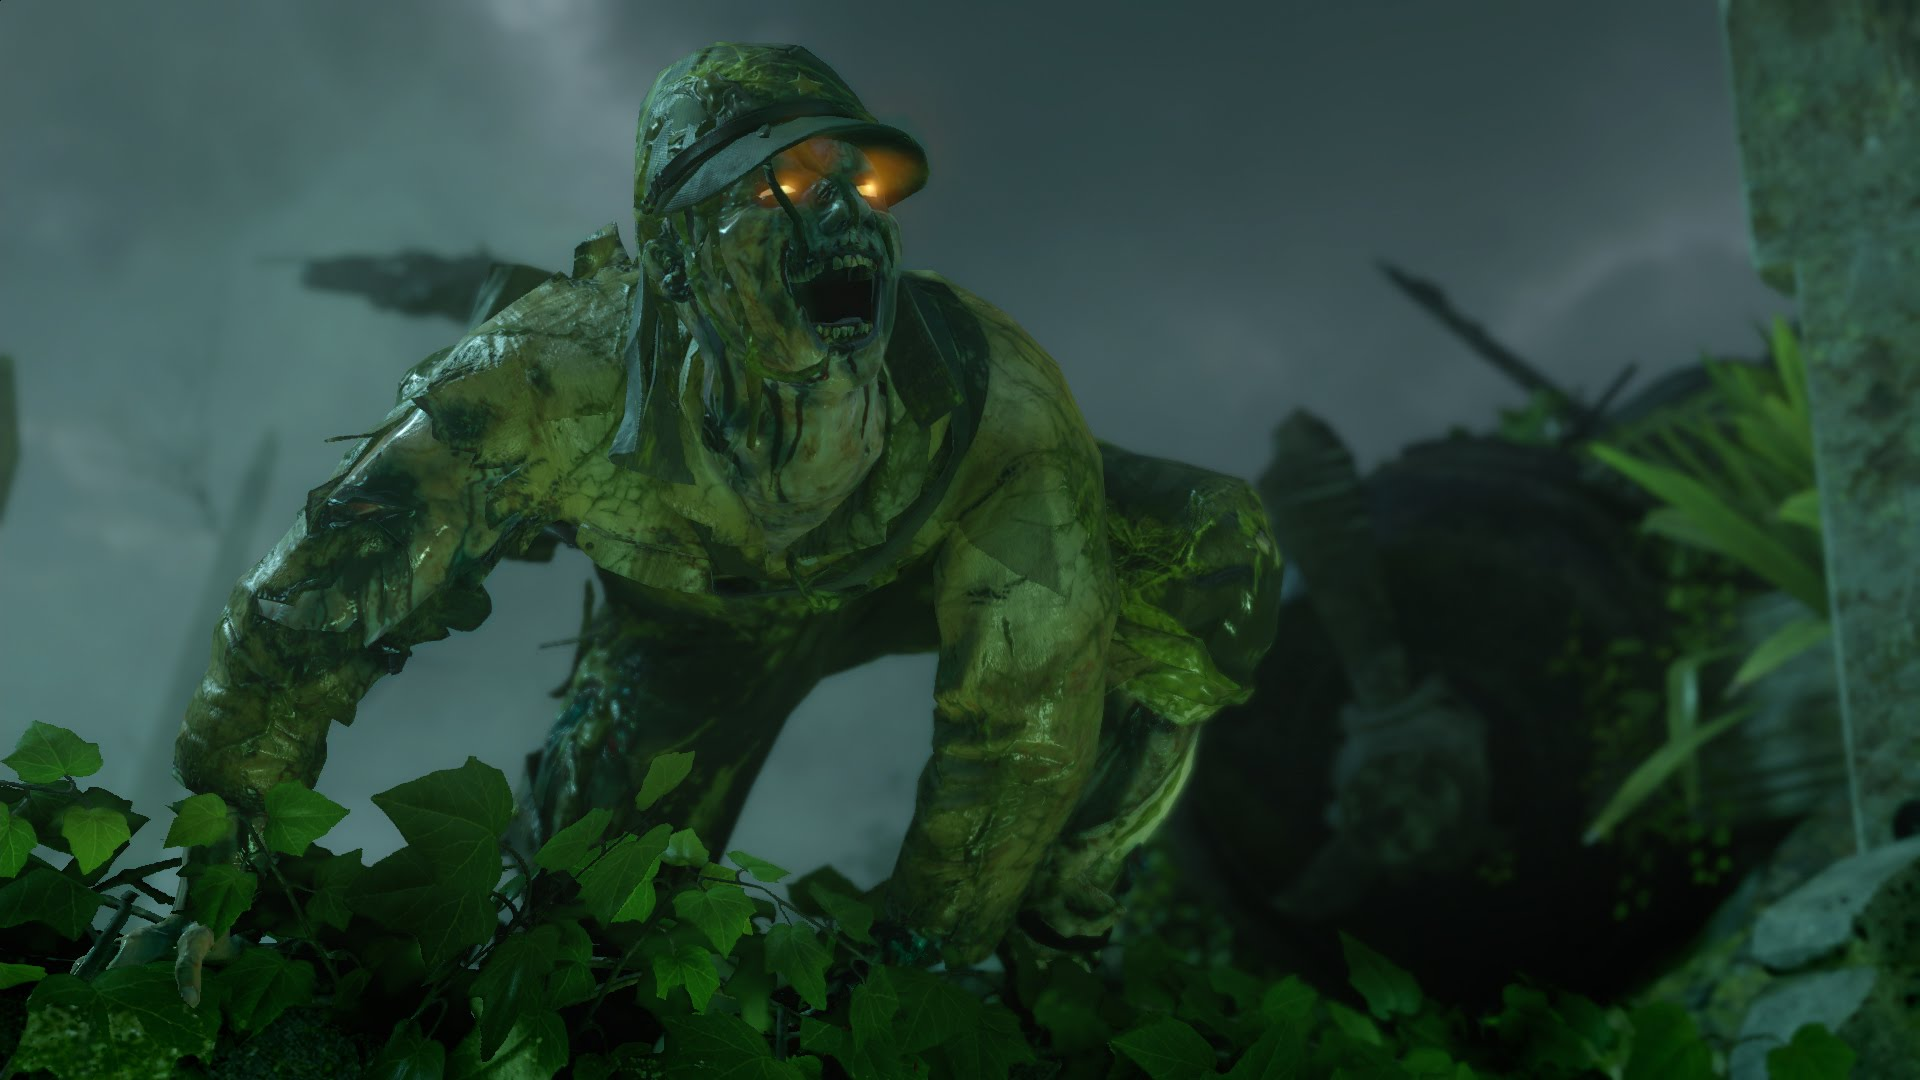 Call of Duty Black Ops III Zetsubou No Shima